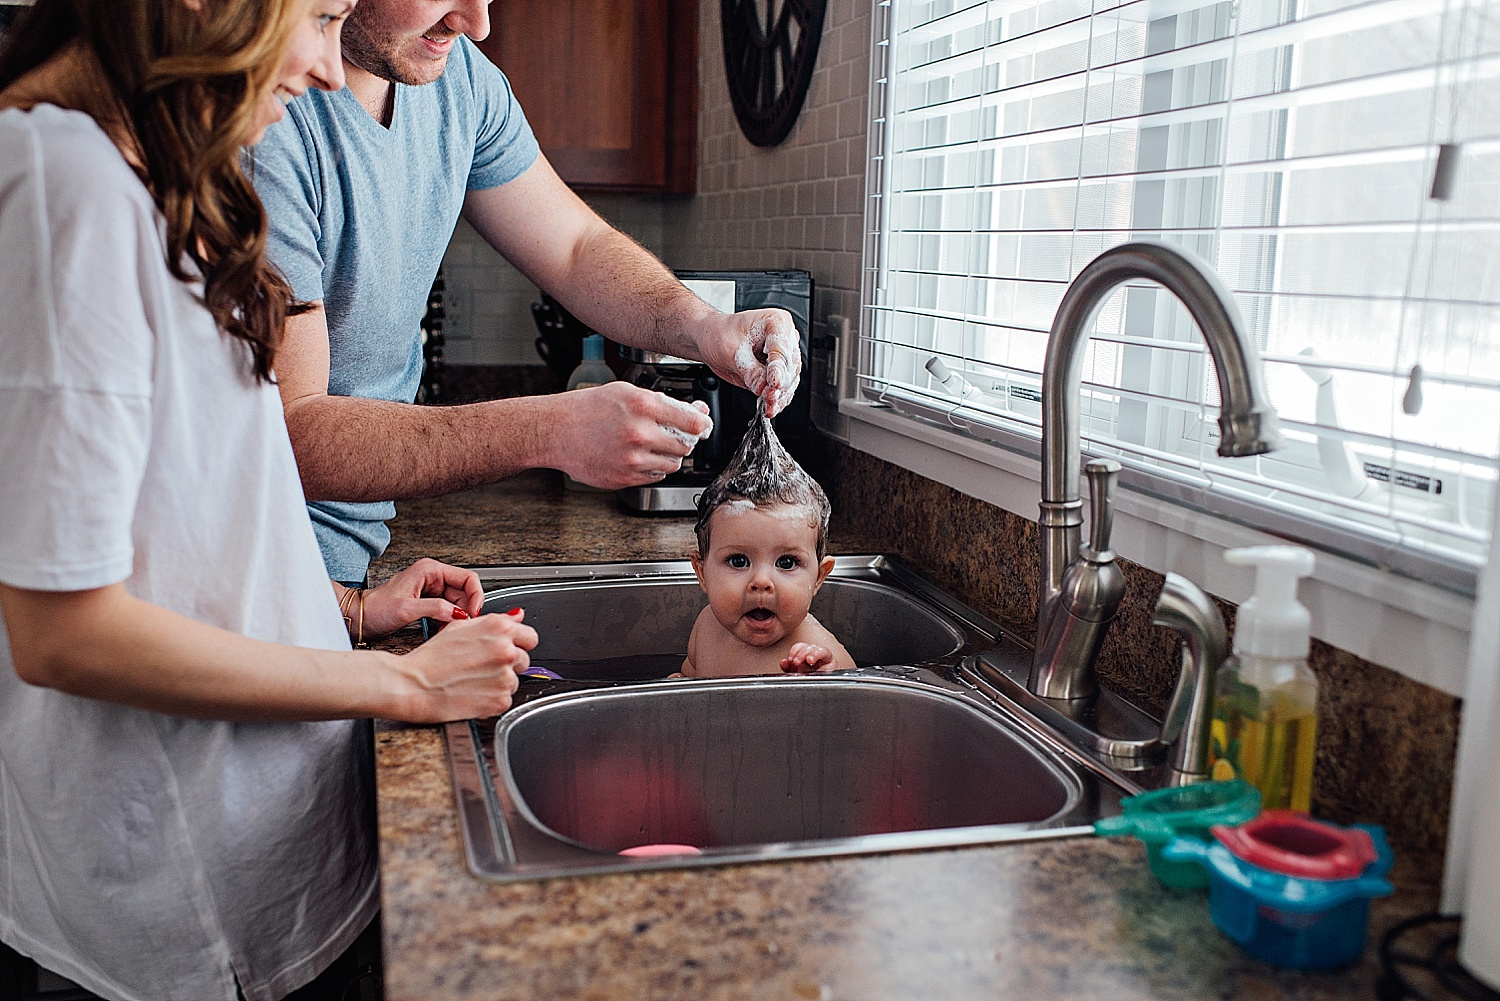 toth-family-lifestyle-in-home-portraits-lauren-grayson-photography-cleveland-child-photographer